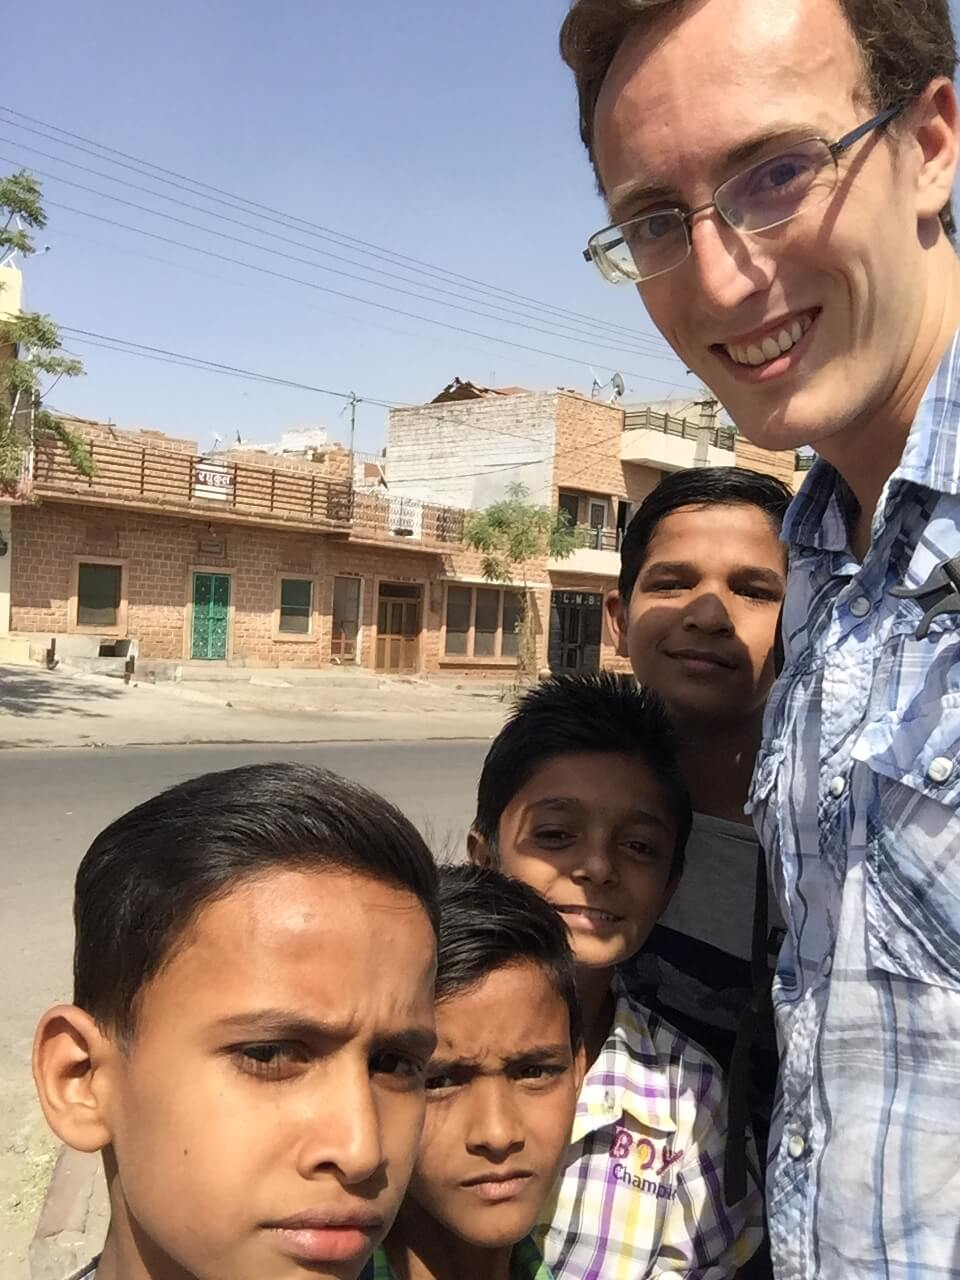 Selfie with Kids in Jodhpur, Rajasthan, India